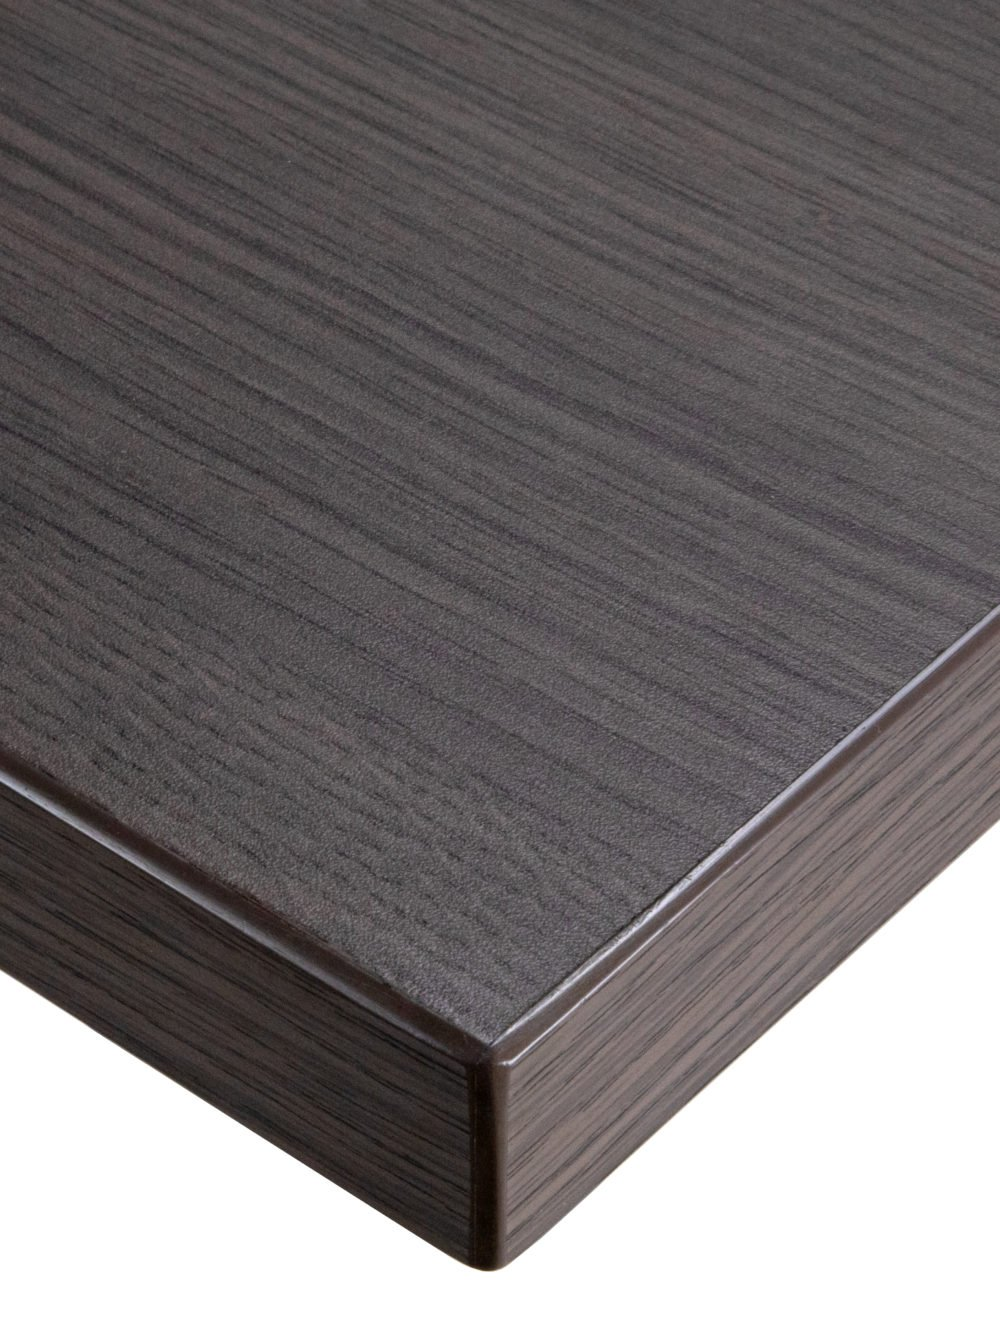 MDF 2mm ABS Edge table top